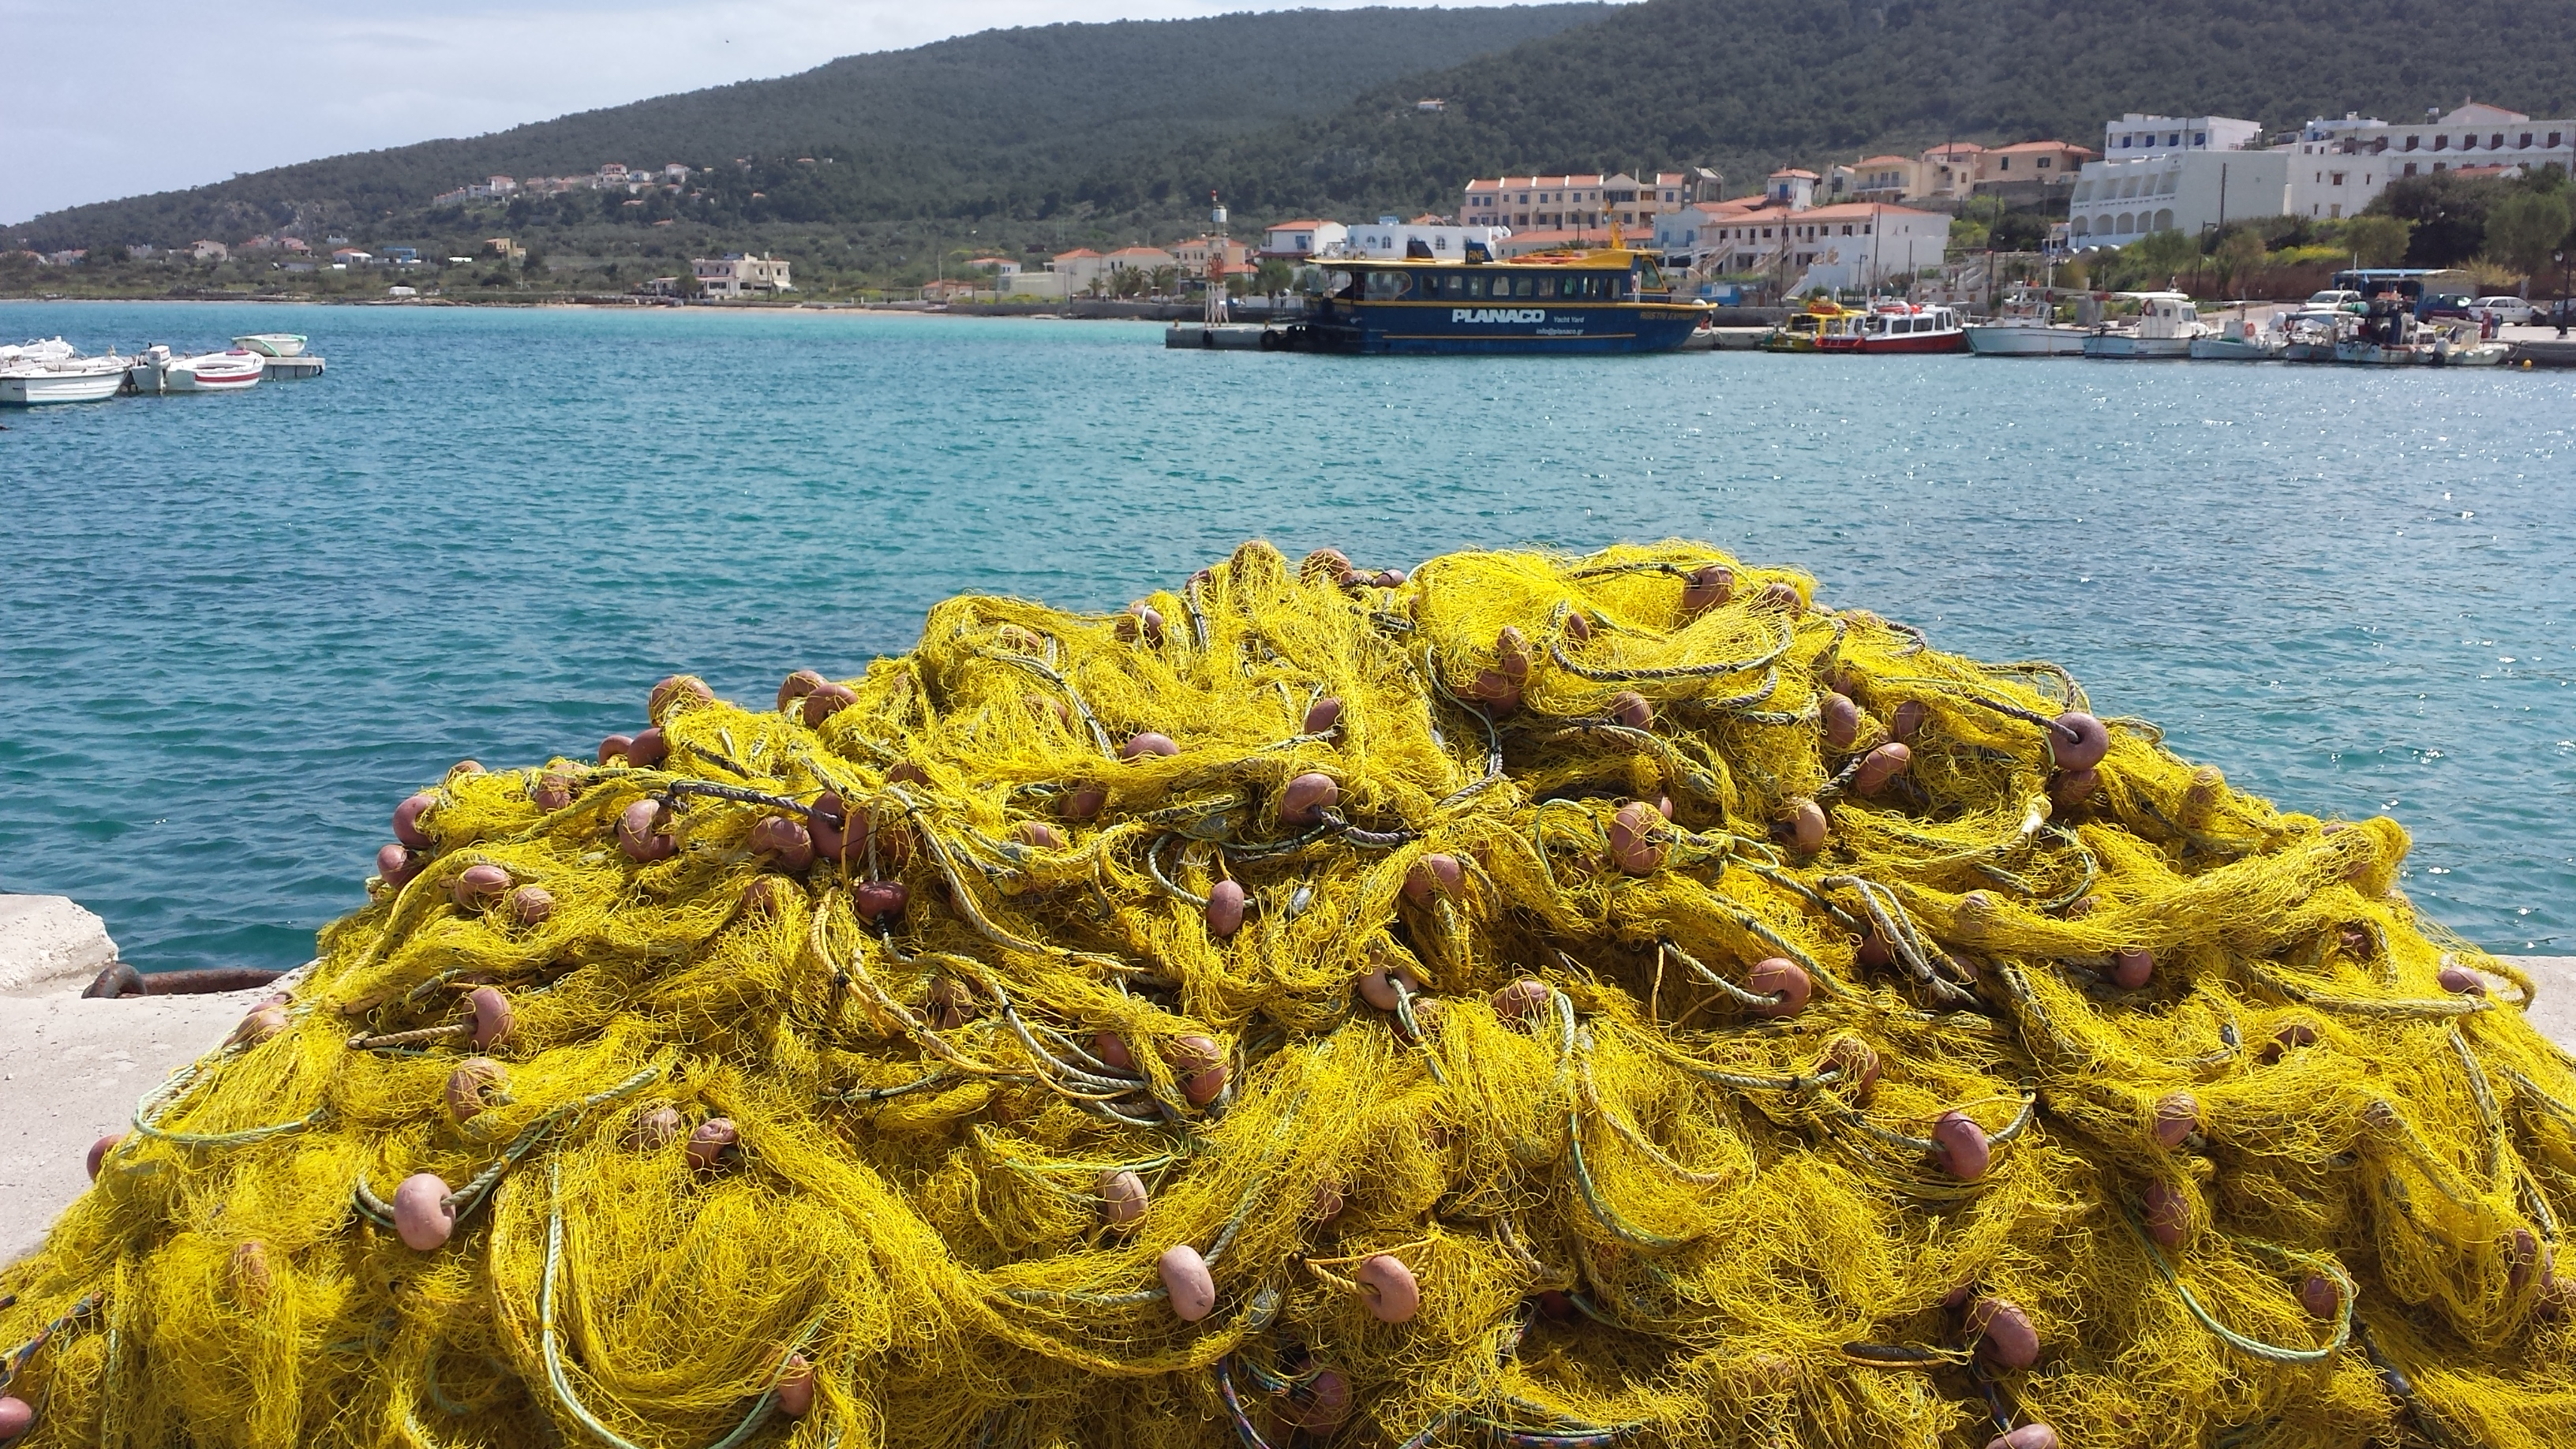 Fishing nets in harbour as we leave Greece